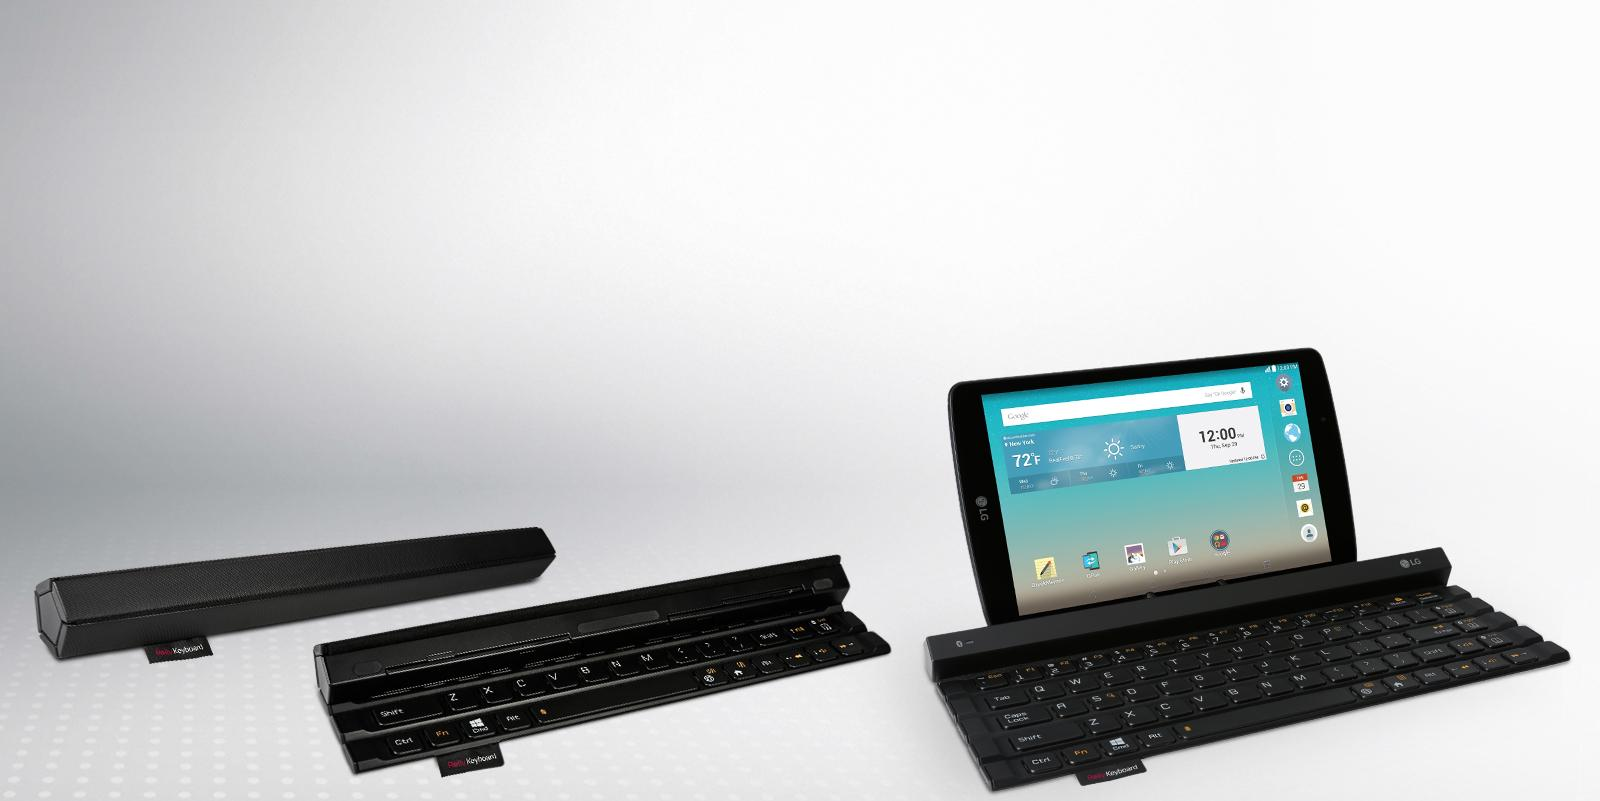 Lg Wireless Keyboards For Tablets And Phones Lg Usa